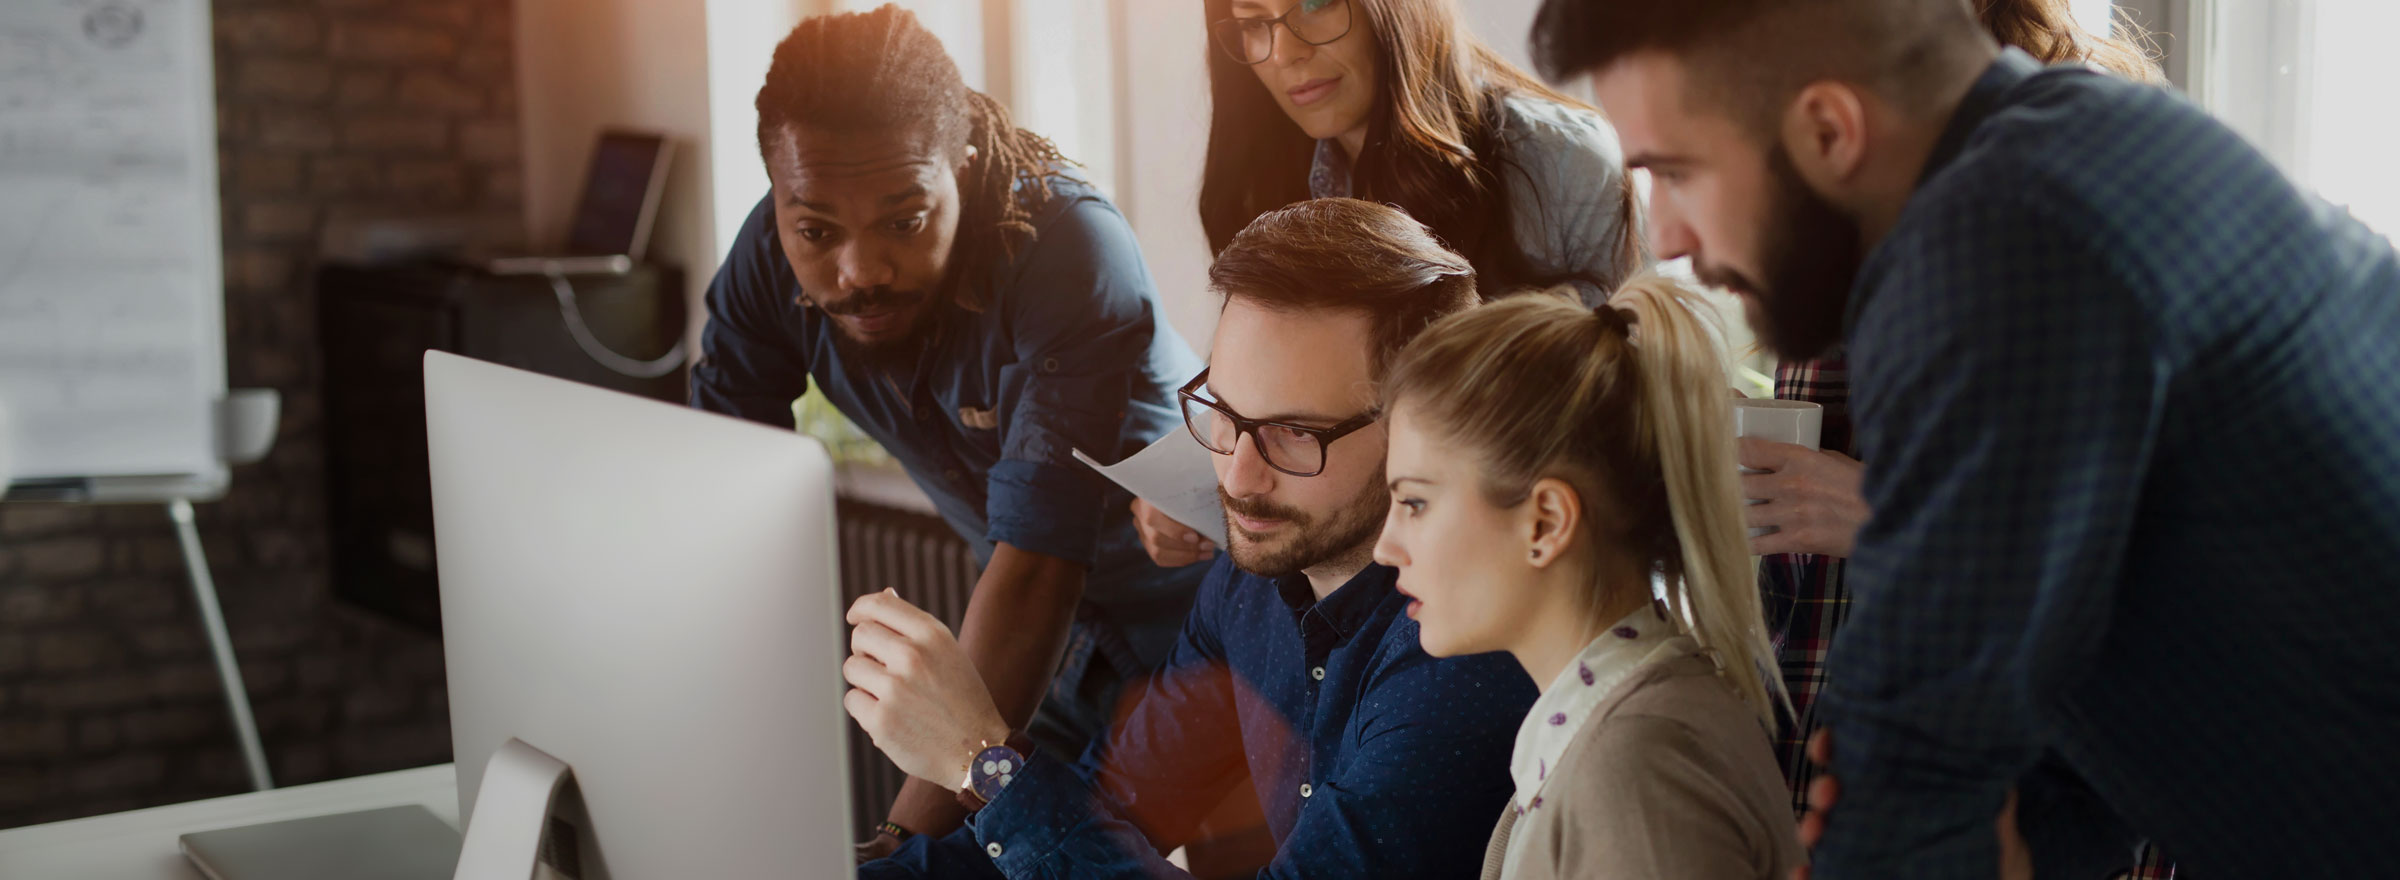 group of people looking with concern at a computer monitor